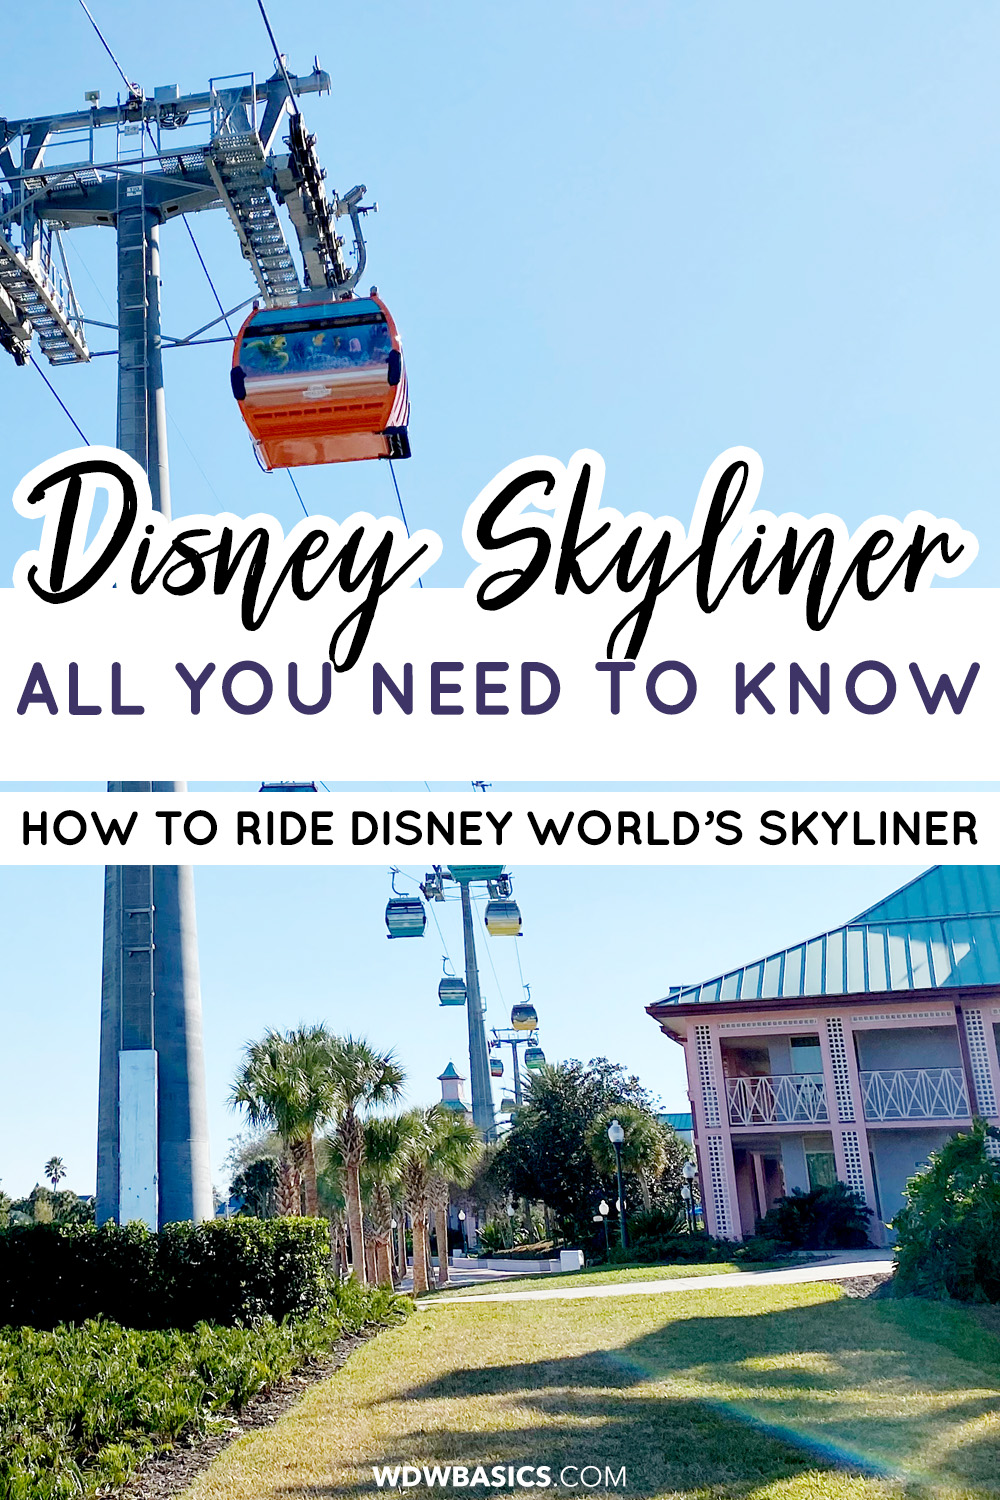 Disney Skyliner - All you need to know